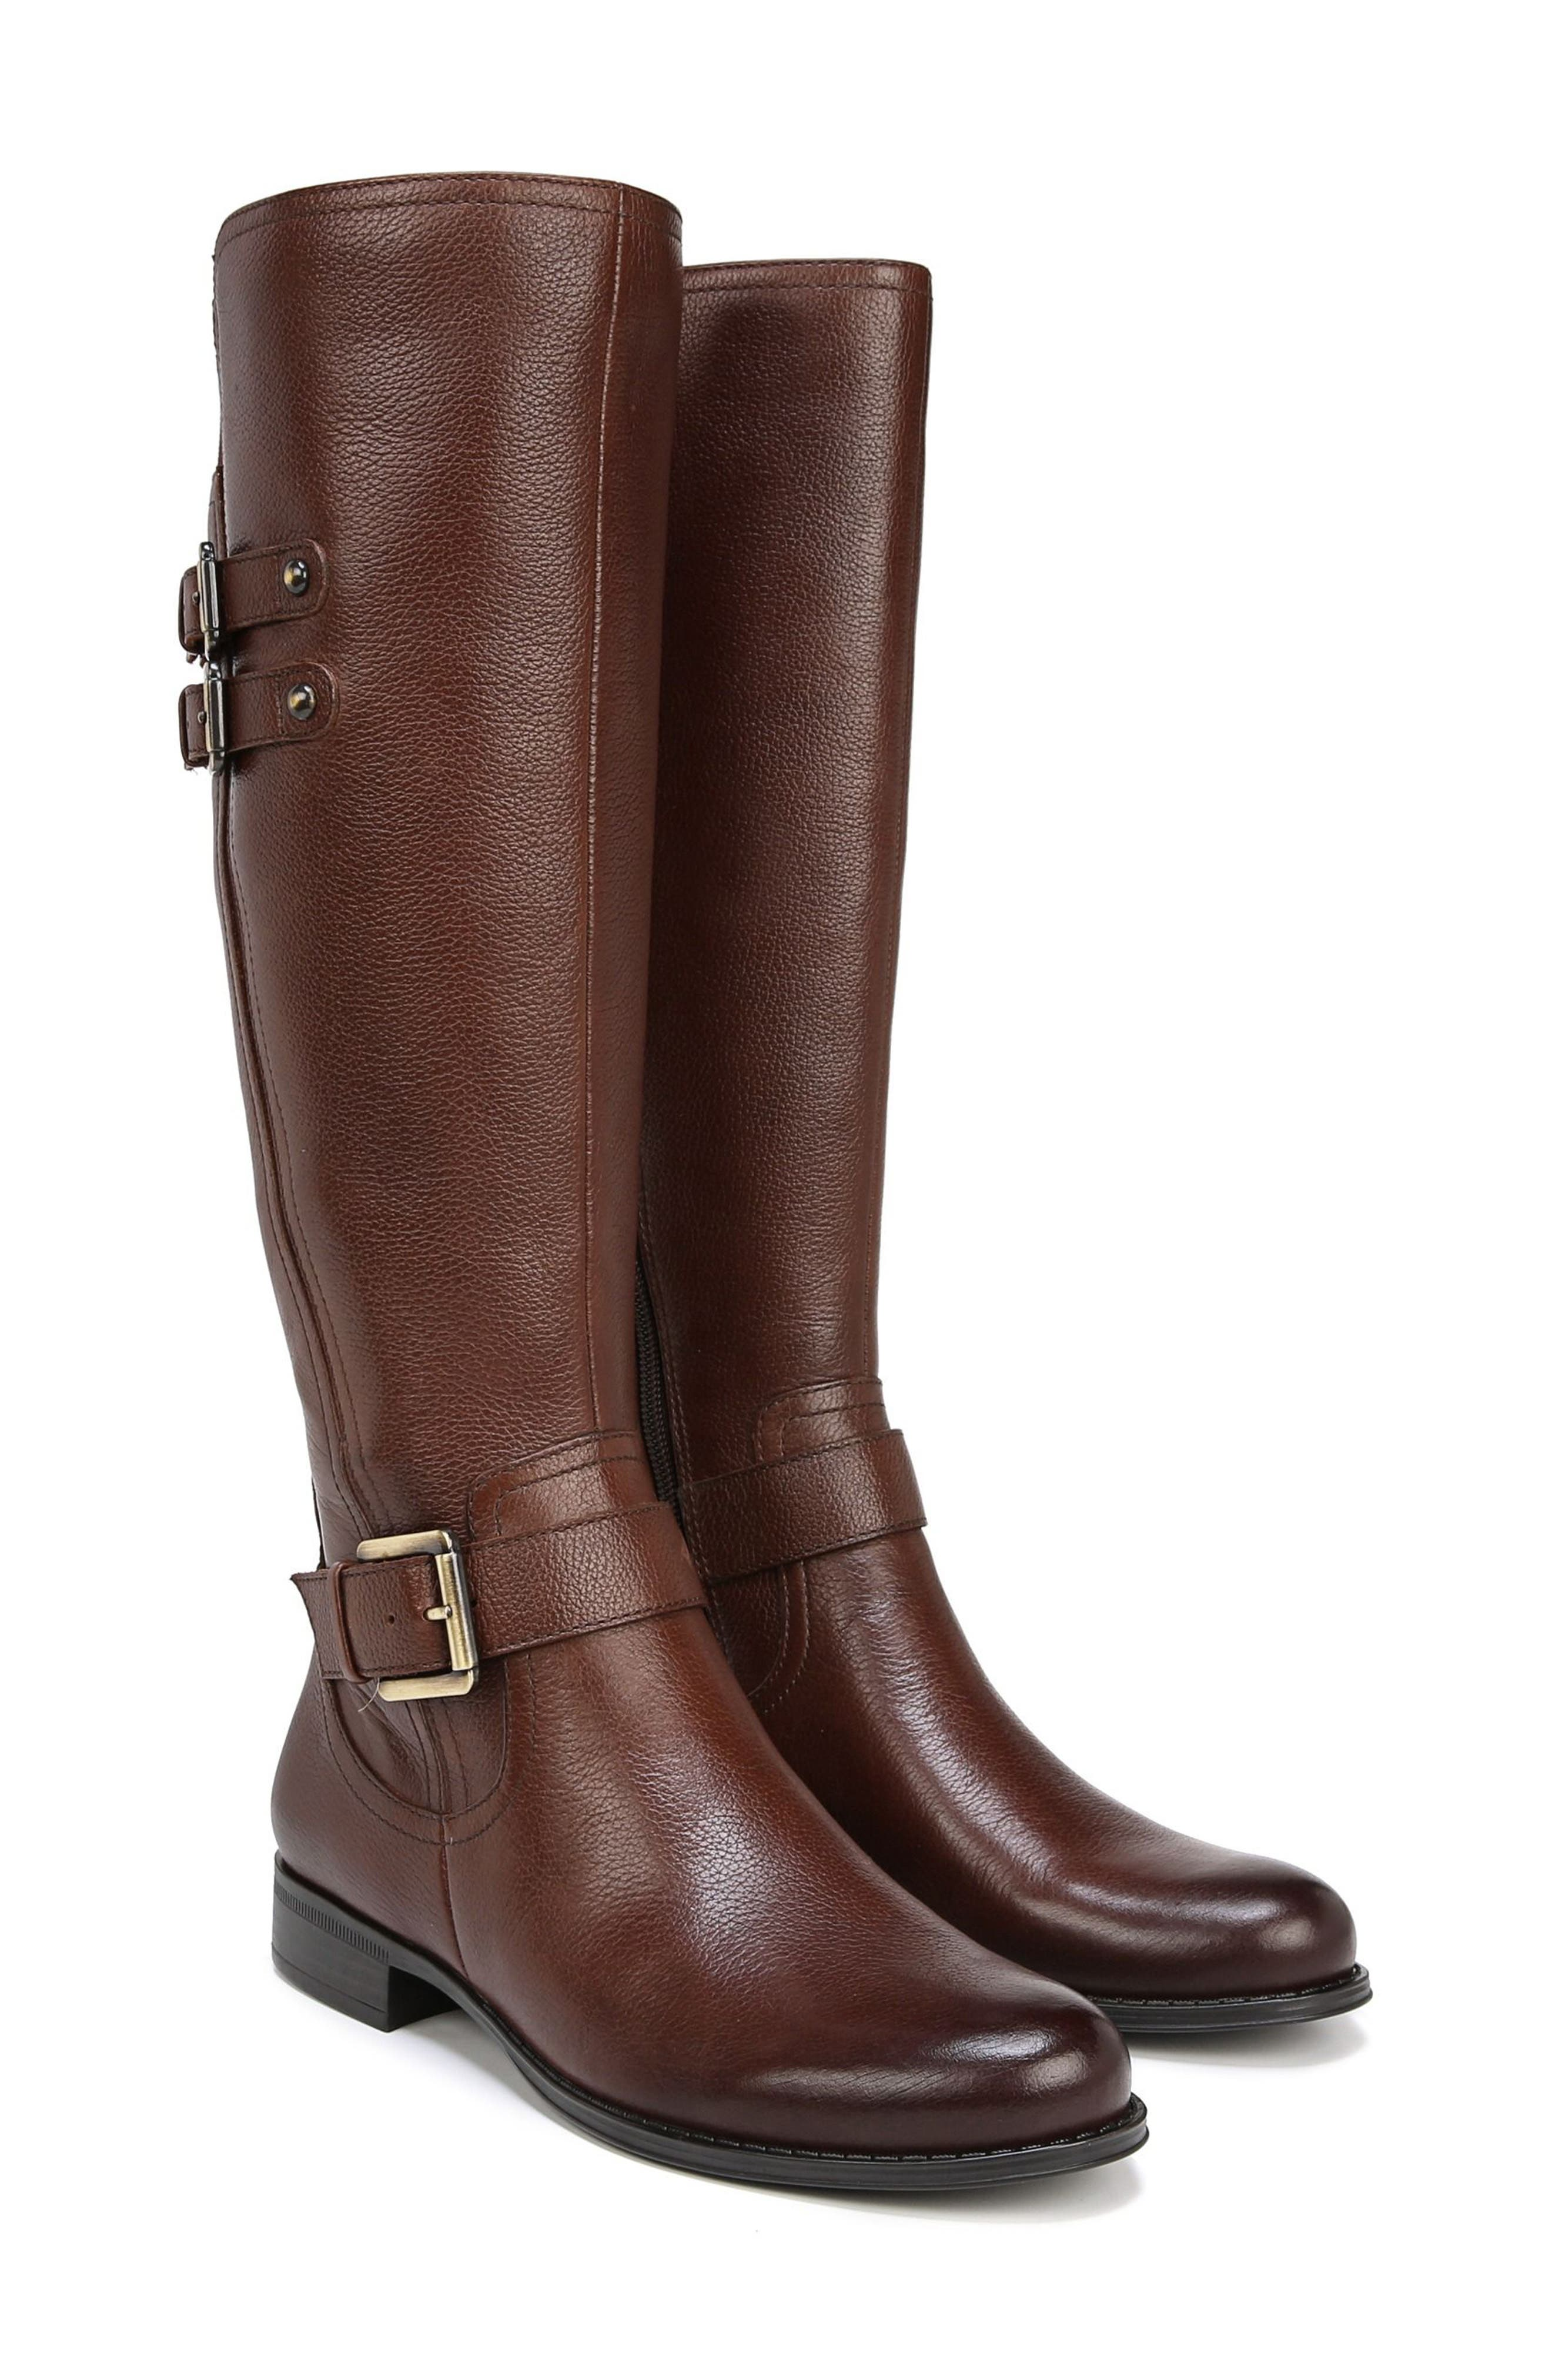 NATURALIZER, Jessie Knee High Riding Boot, Alternate thumbnail 8, color, CHOCOLATE LEATHER